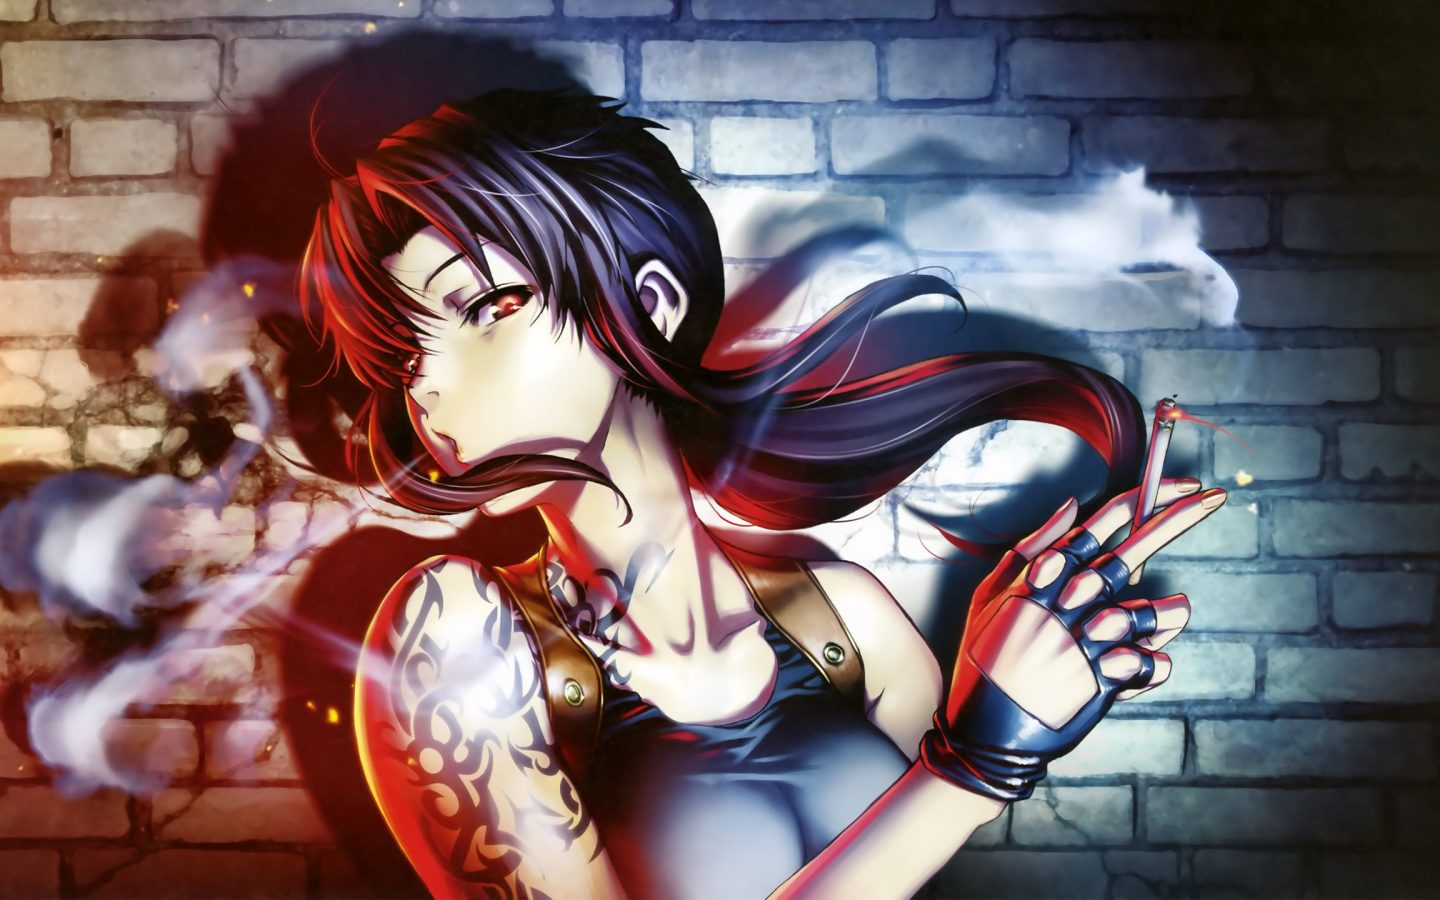 Anime Wallpapers Hd Girl Red Download Hd Wallpaper For Free Download Images For Free